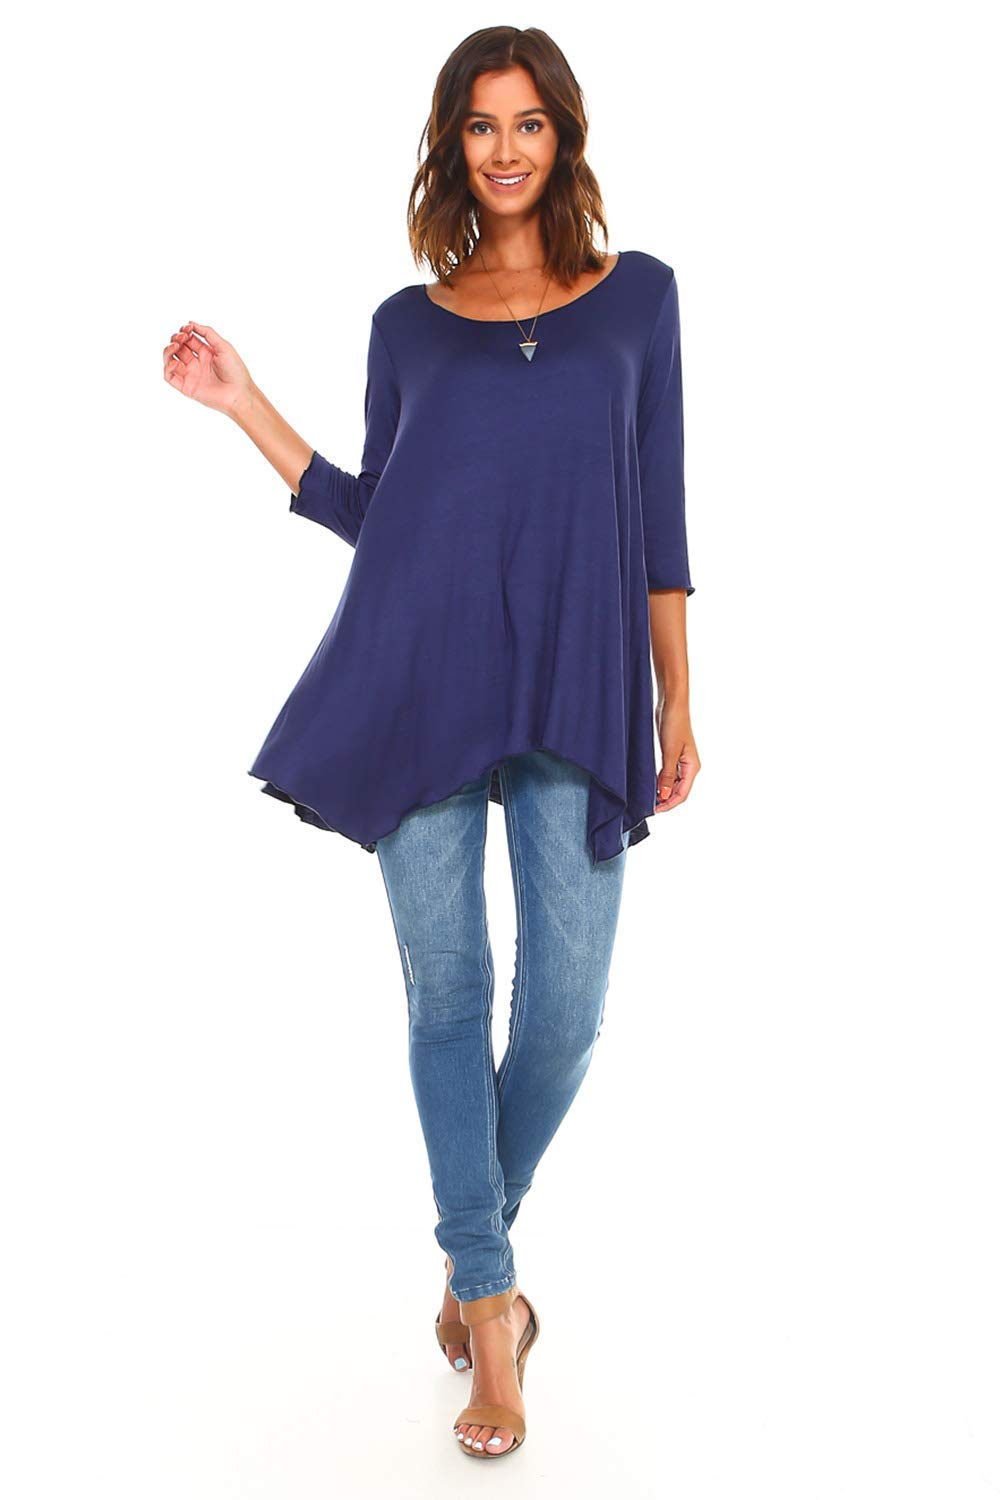 Navy Blue Made in USA Regular and Plus Size Simplicitie Womens 3//4 Sleeve Loose Fit Flare Swing T Shirt Tunic Top